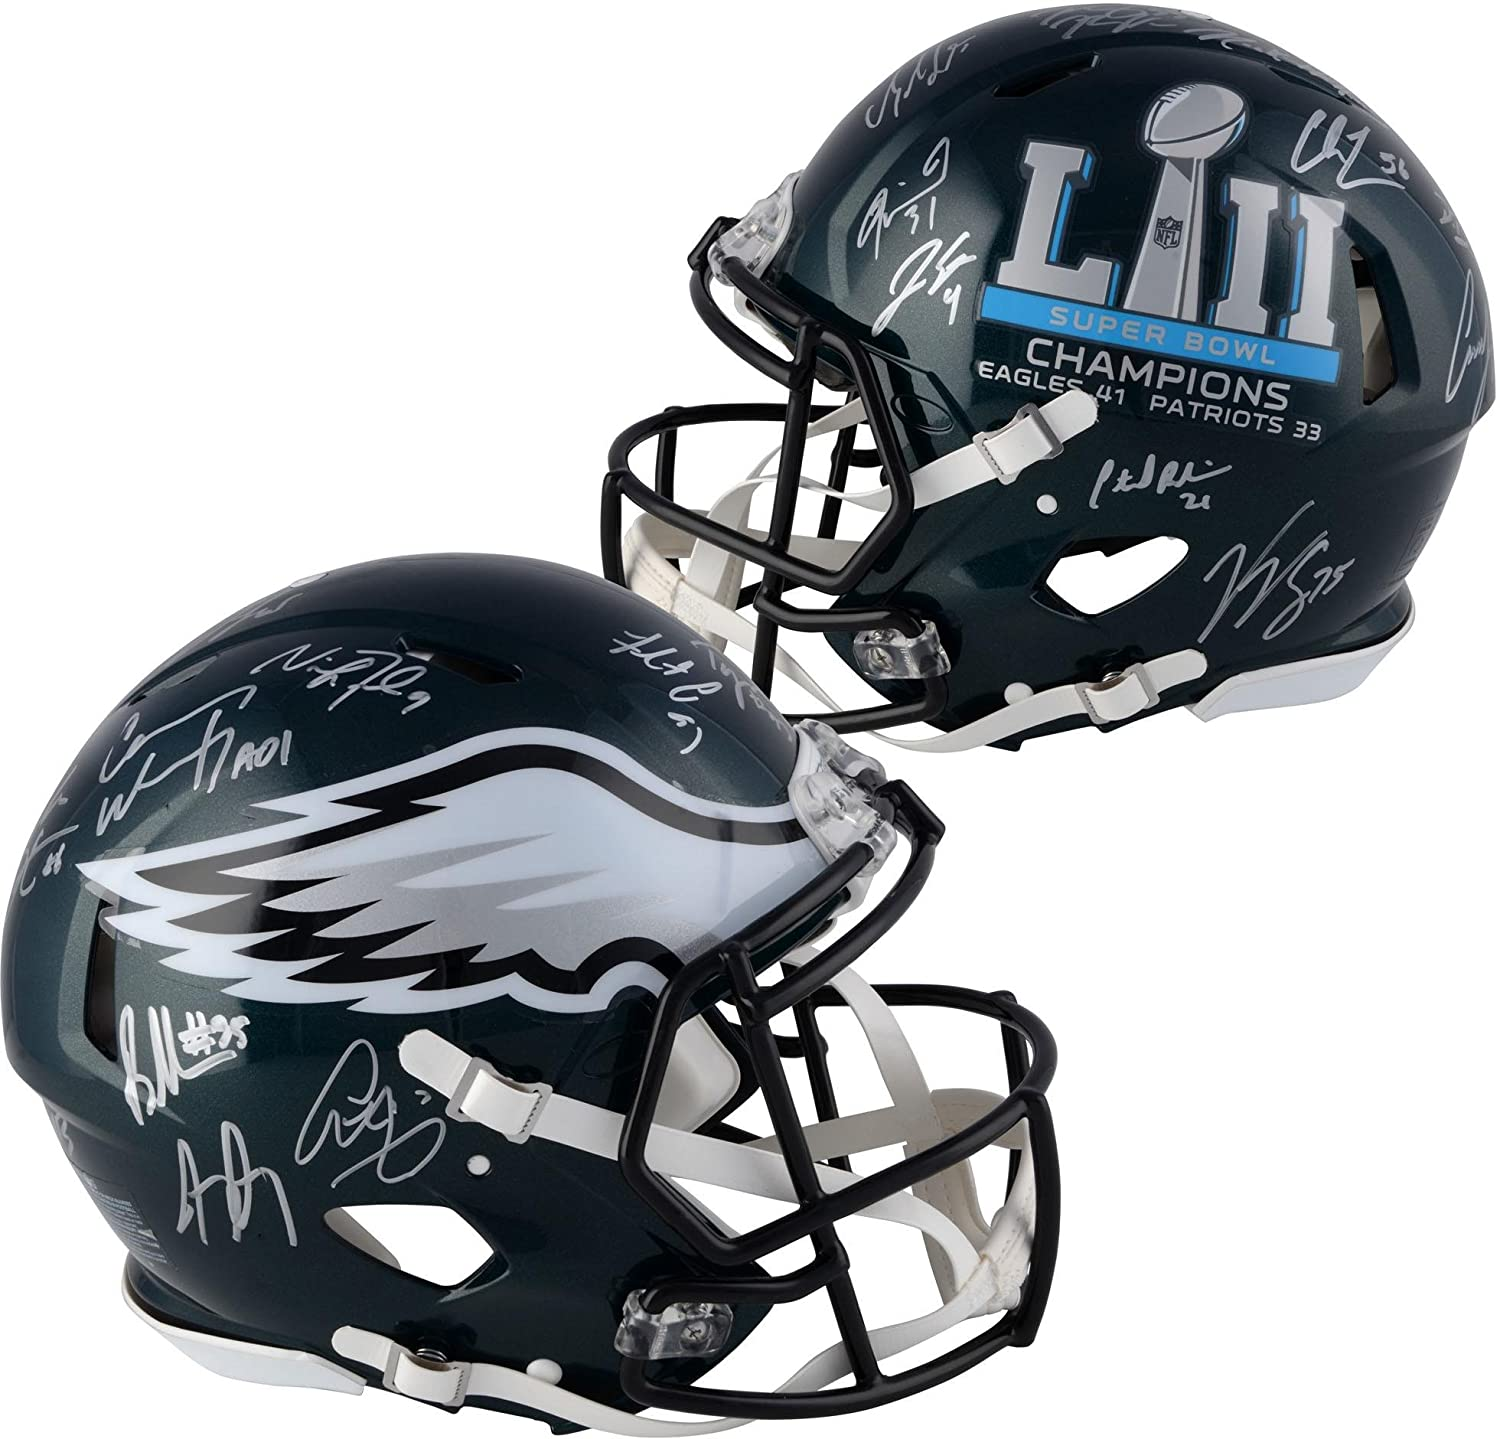 Philadelphia Eagles Autographed Riddell Super Bowl LII Champions Pro-Line Speed Helmet with Multiple Signatures - Fanatics Authentic Certified